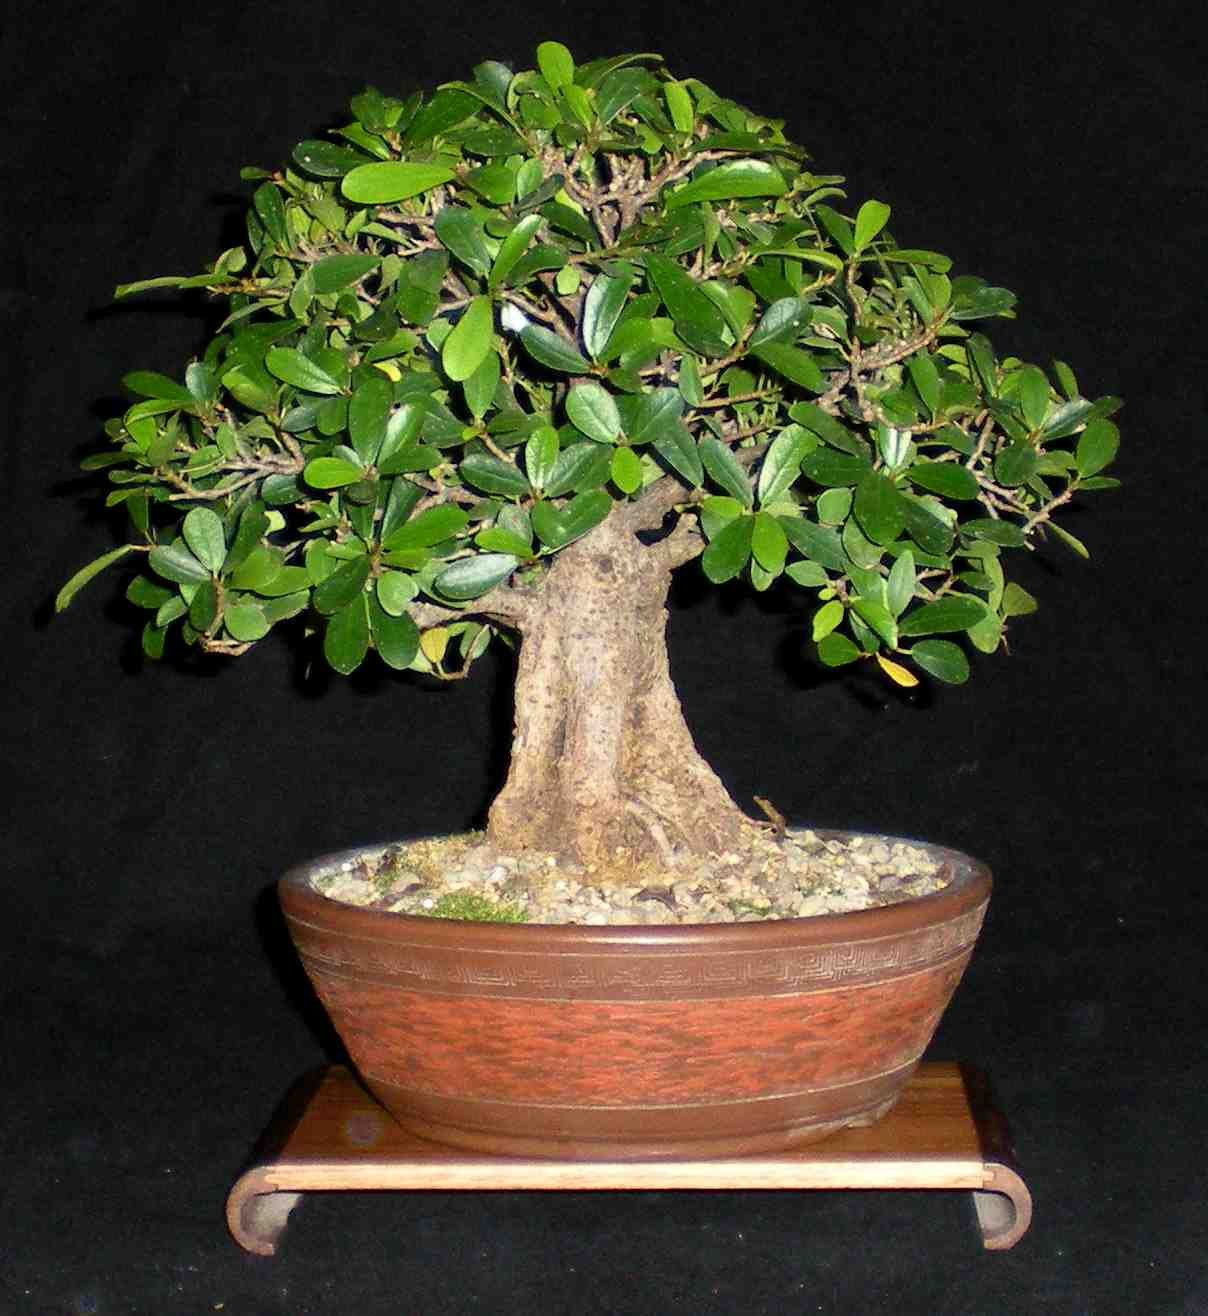 Download image Ficus Microcarpa 1 2 3 PC, Android, iPhone and iPad ...